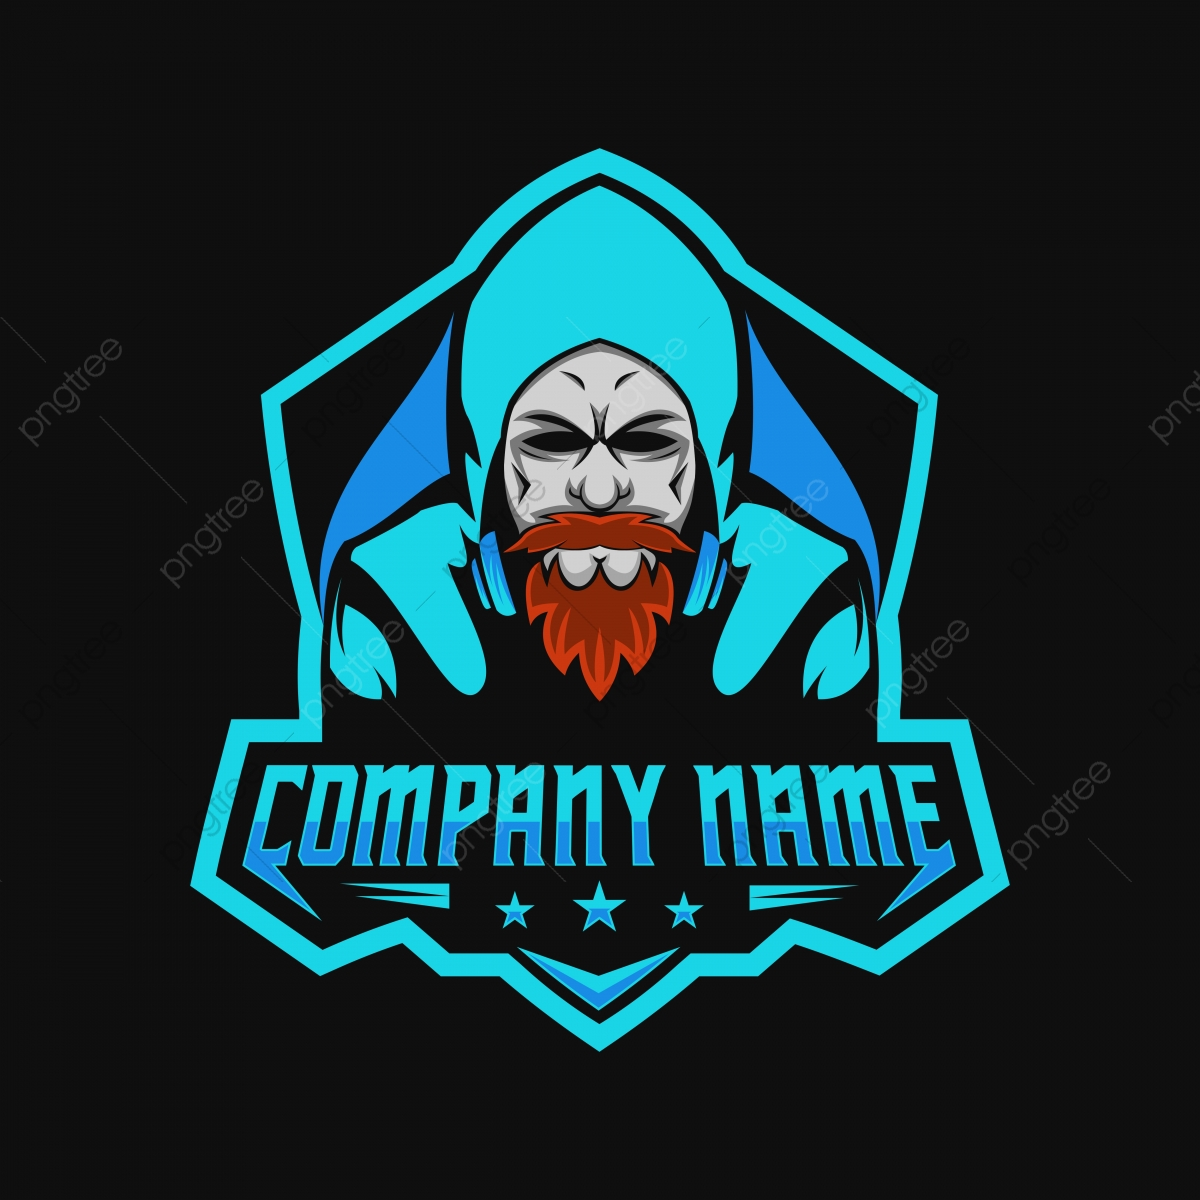 Beard Man Gamers Gaming E Sport Logo Amazing Design For Your Company Or Brand Badge Beard Black Png And Vector With Transparent Background For Free Download